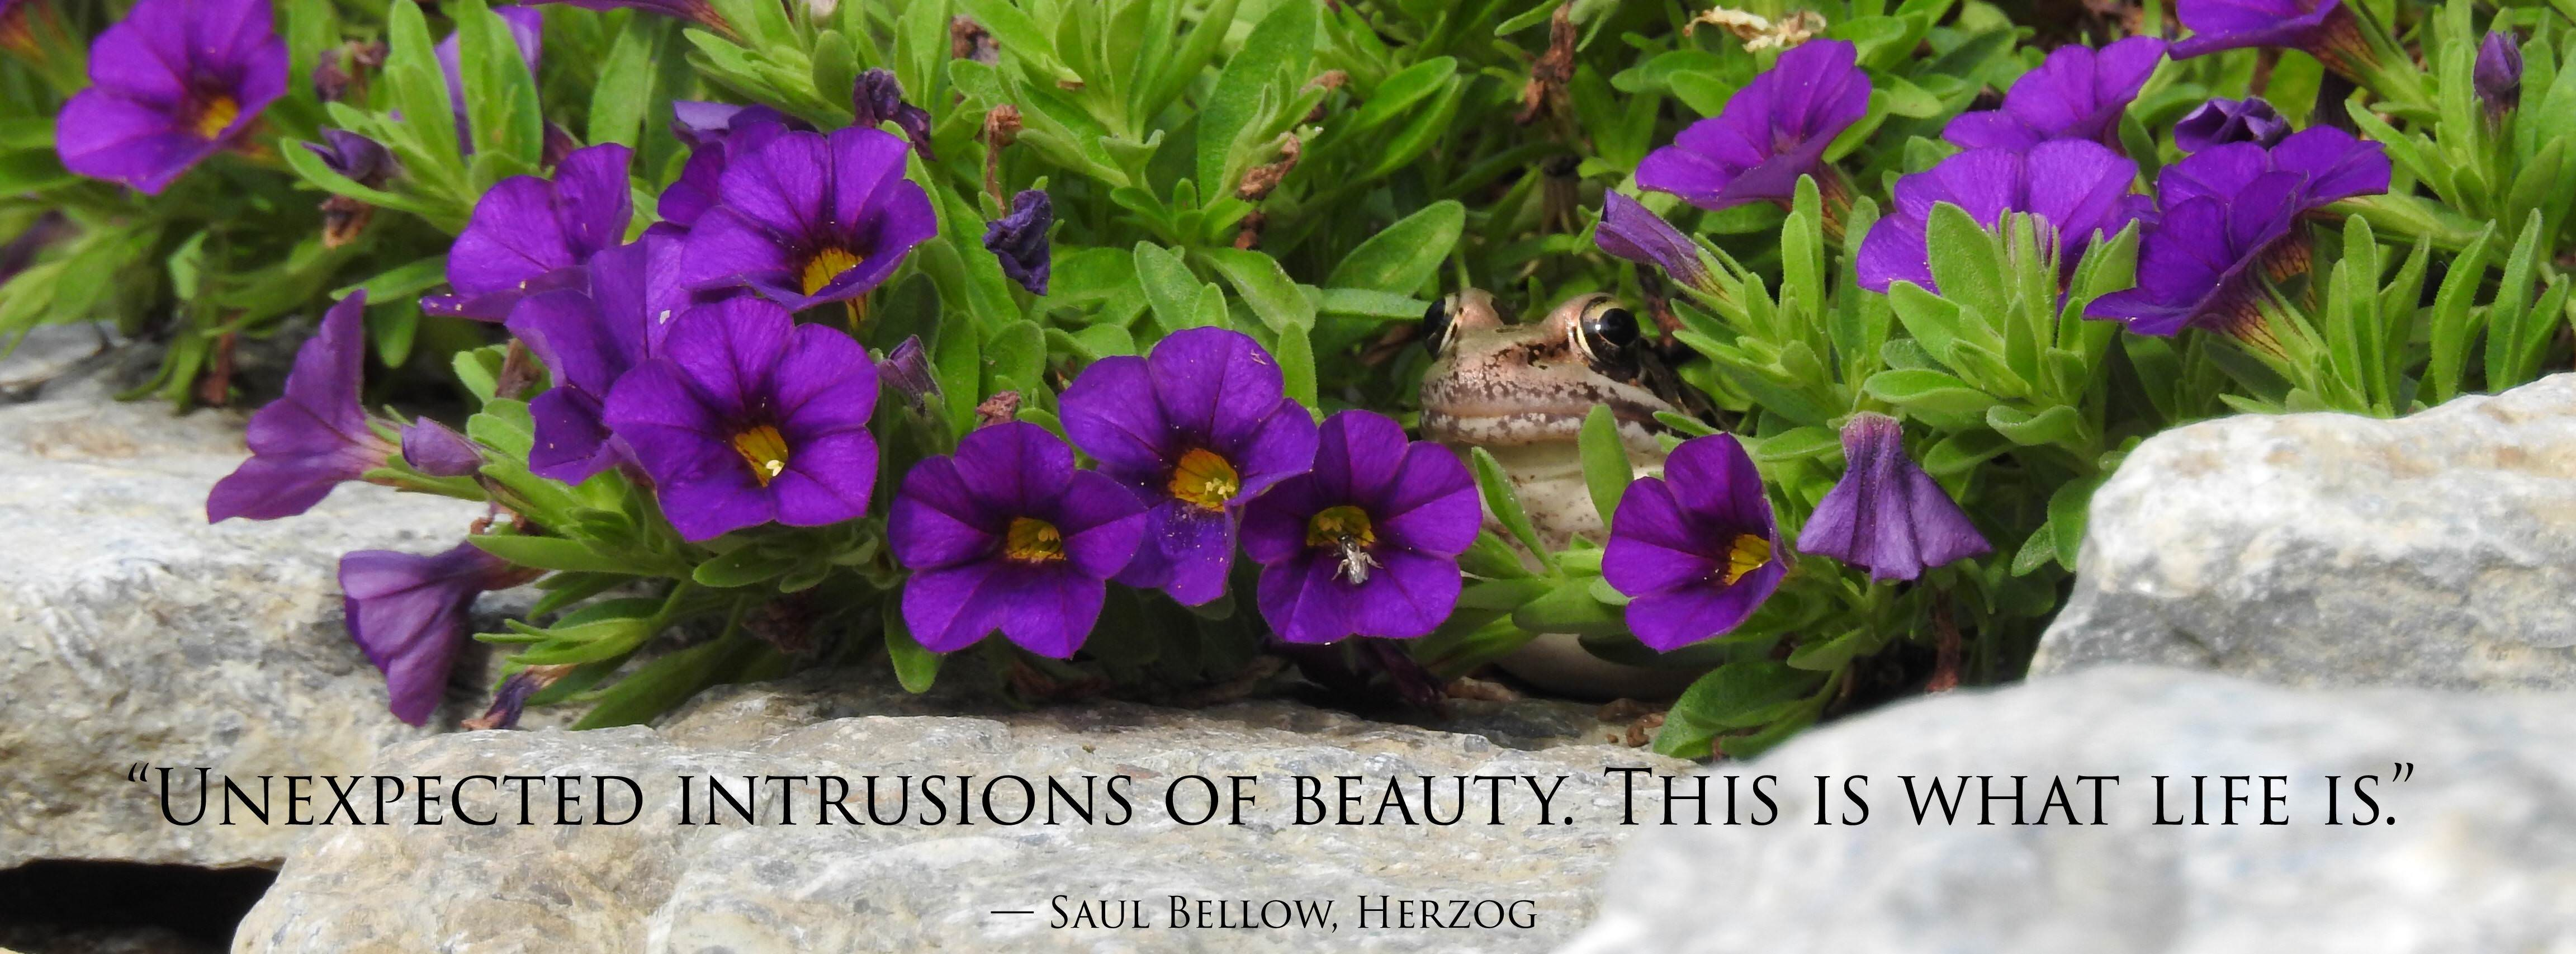 """Unexpected intrusions of beauty. This is what life is."" -Saul Bellow, Herzog [4608×1706]"